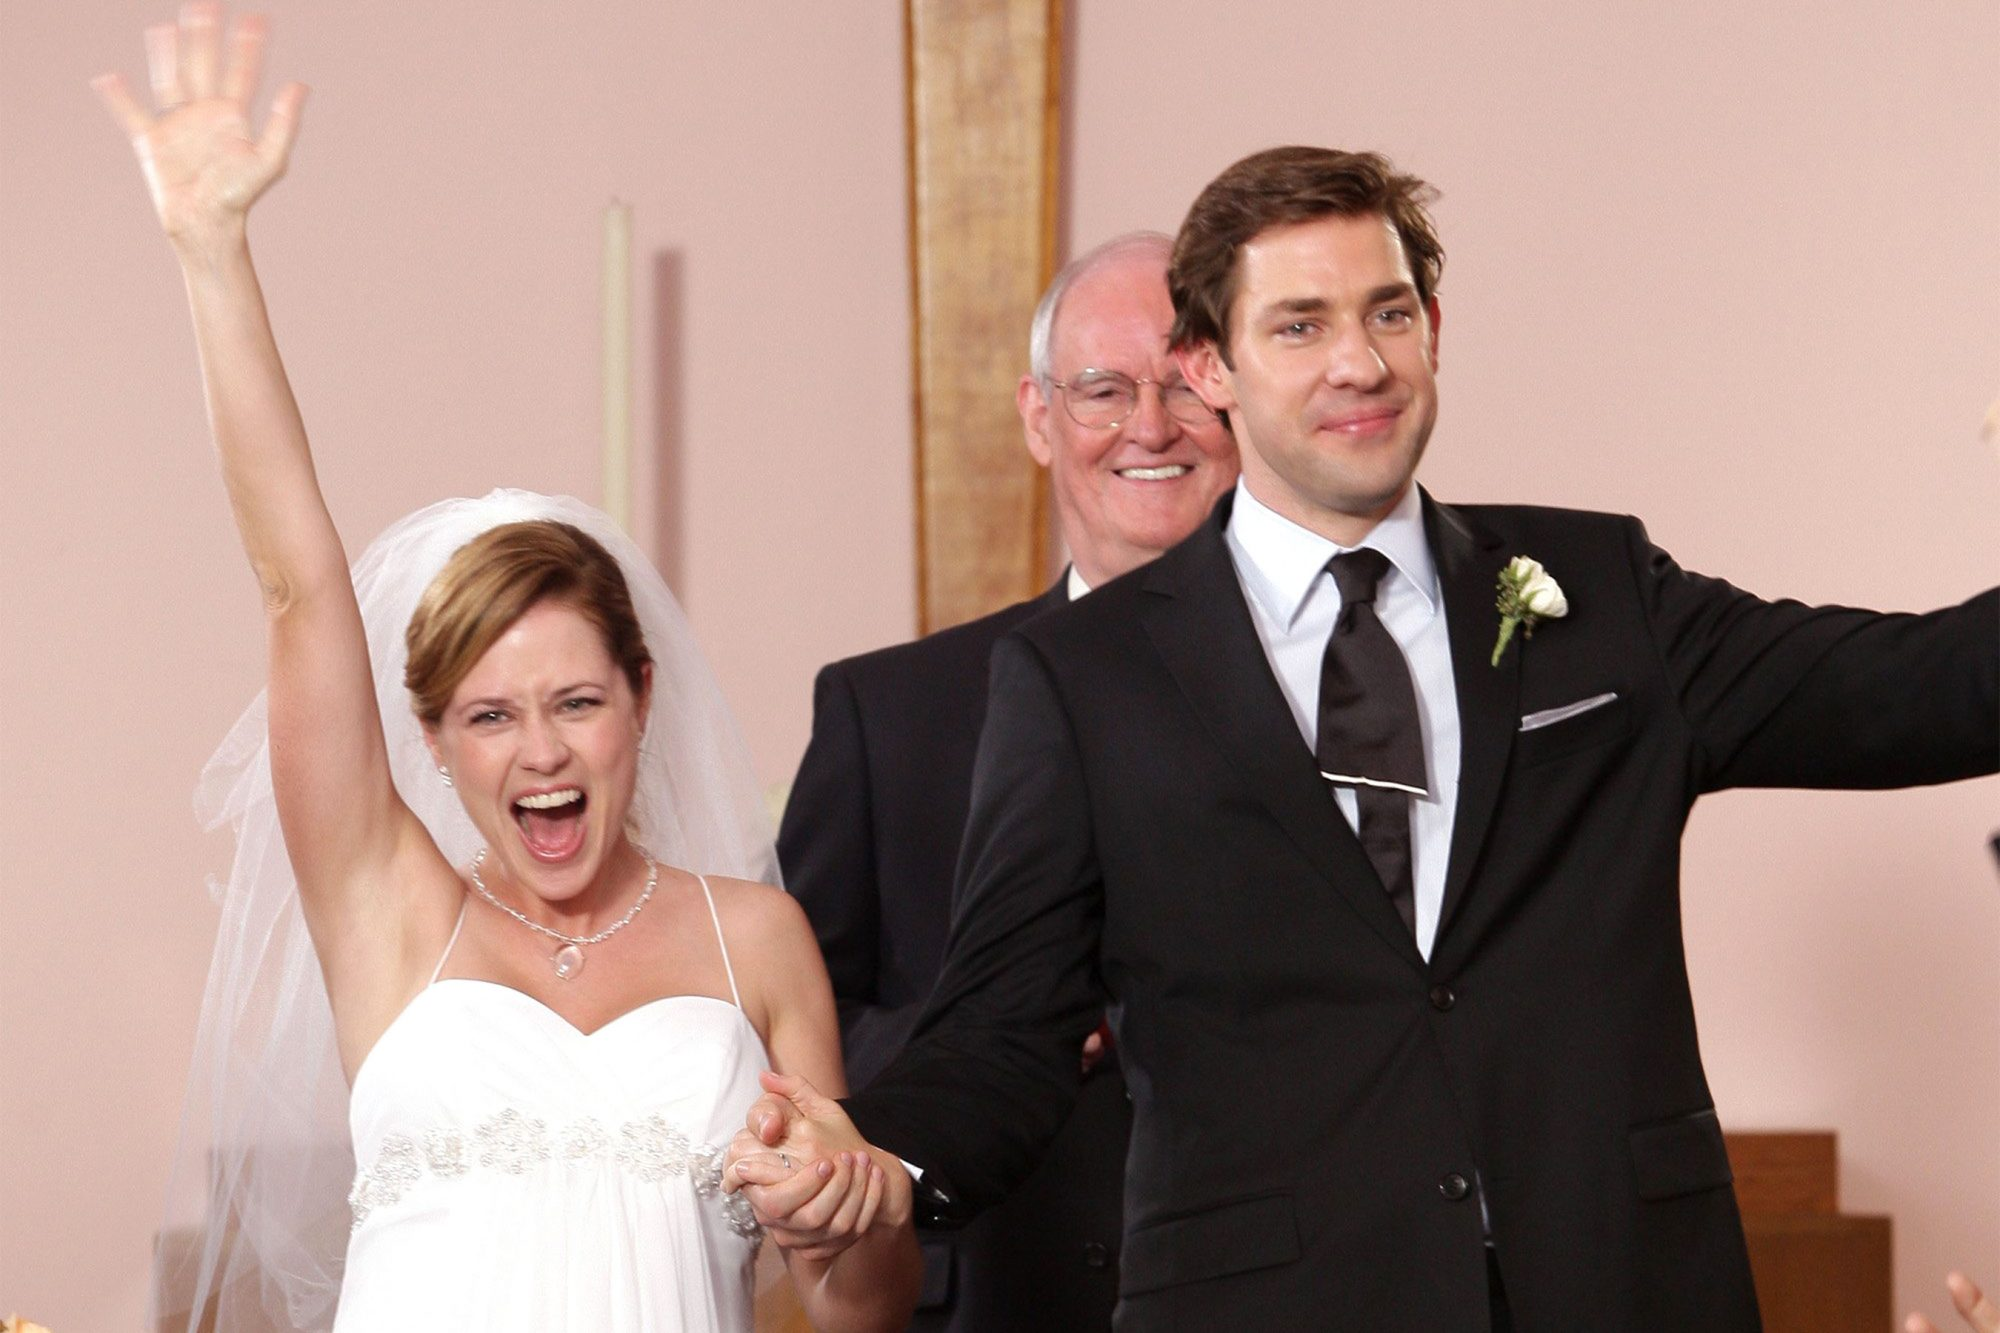 The Office: Oral history of Jim and Pam's wedding | EW.com